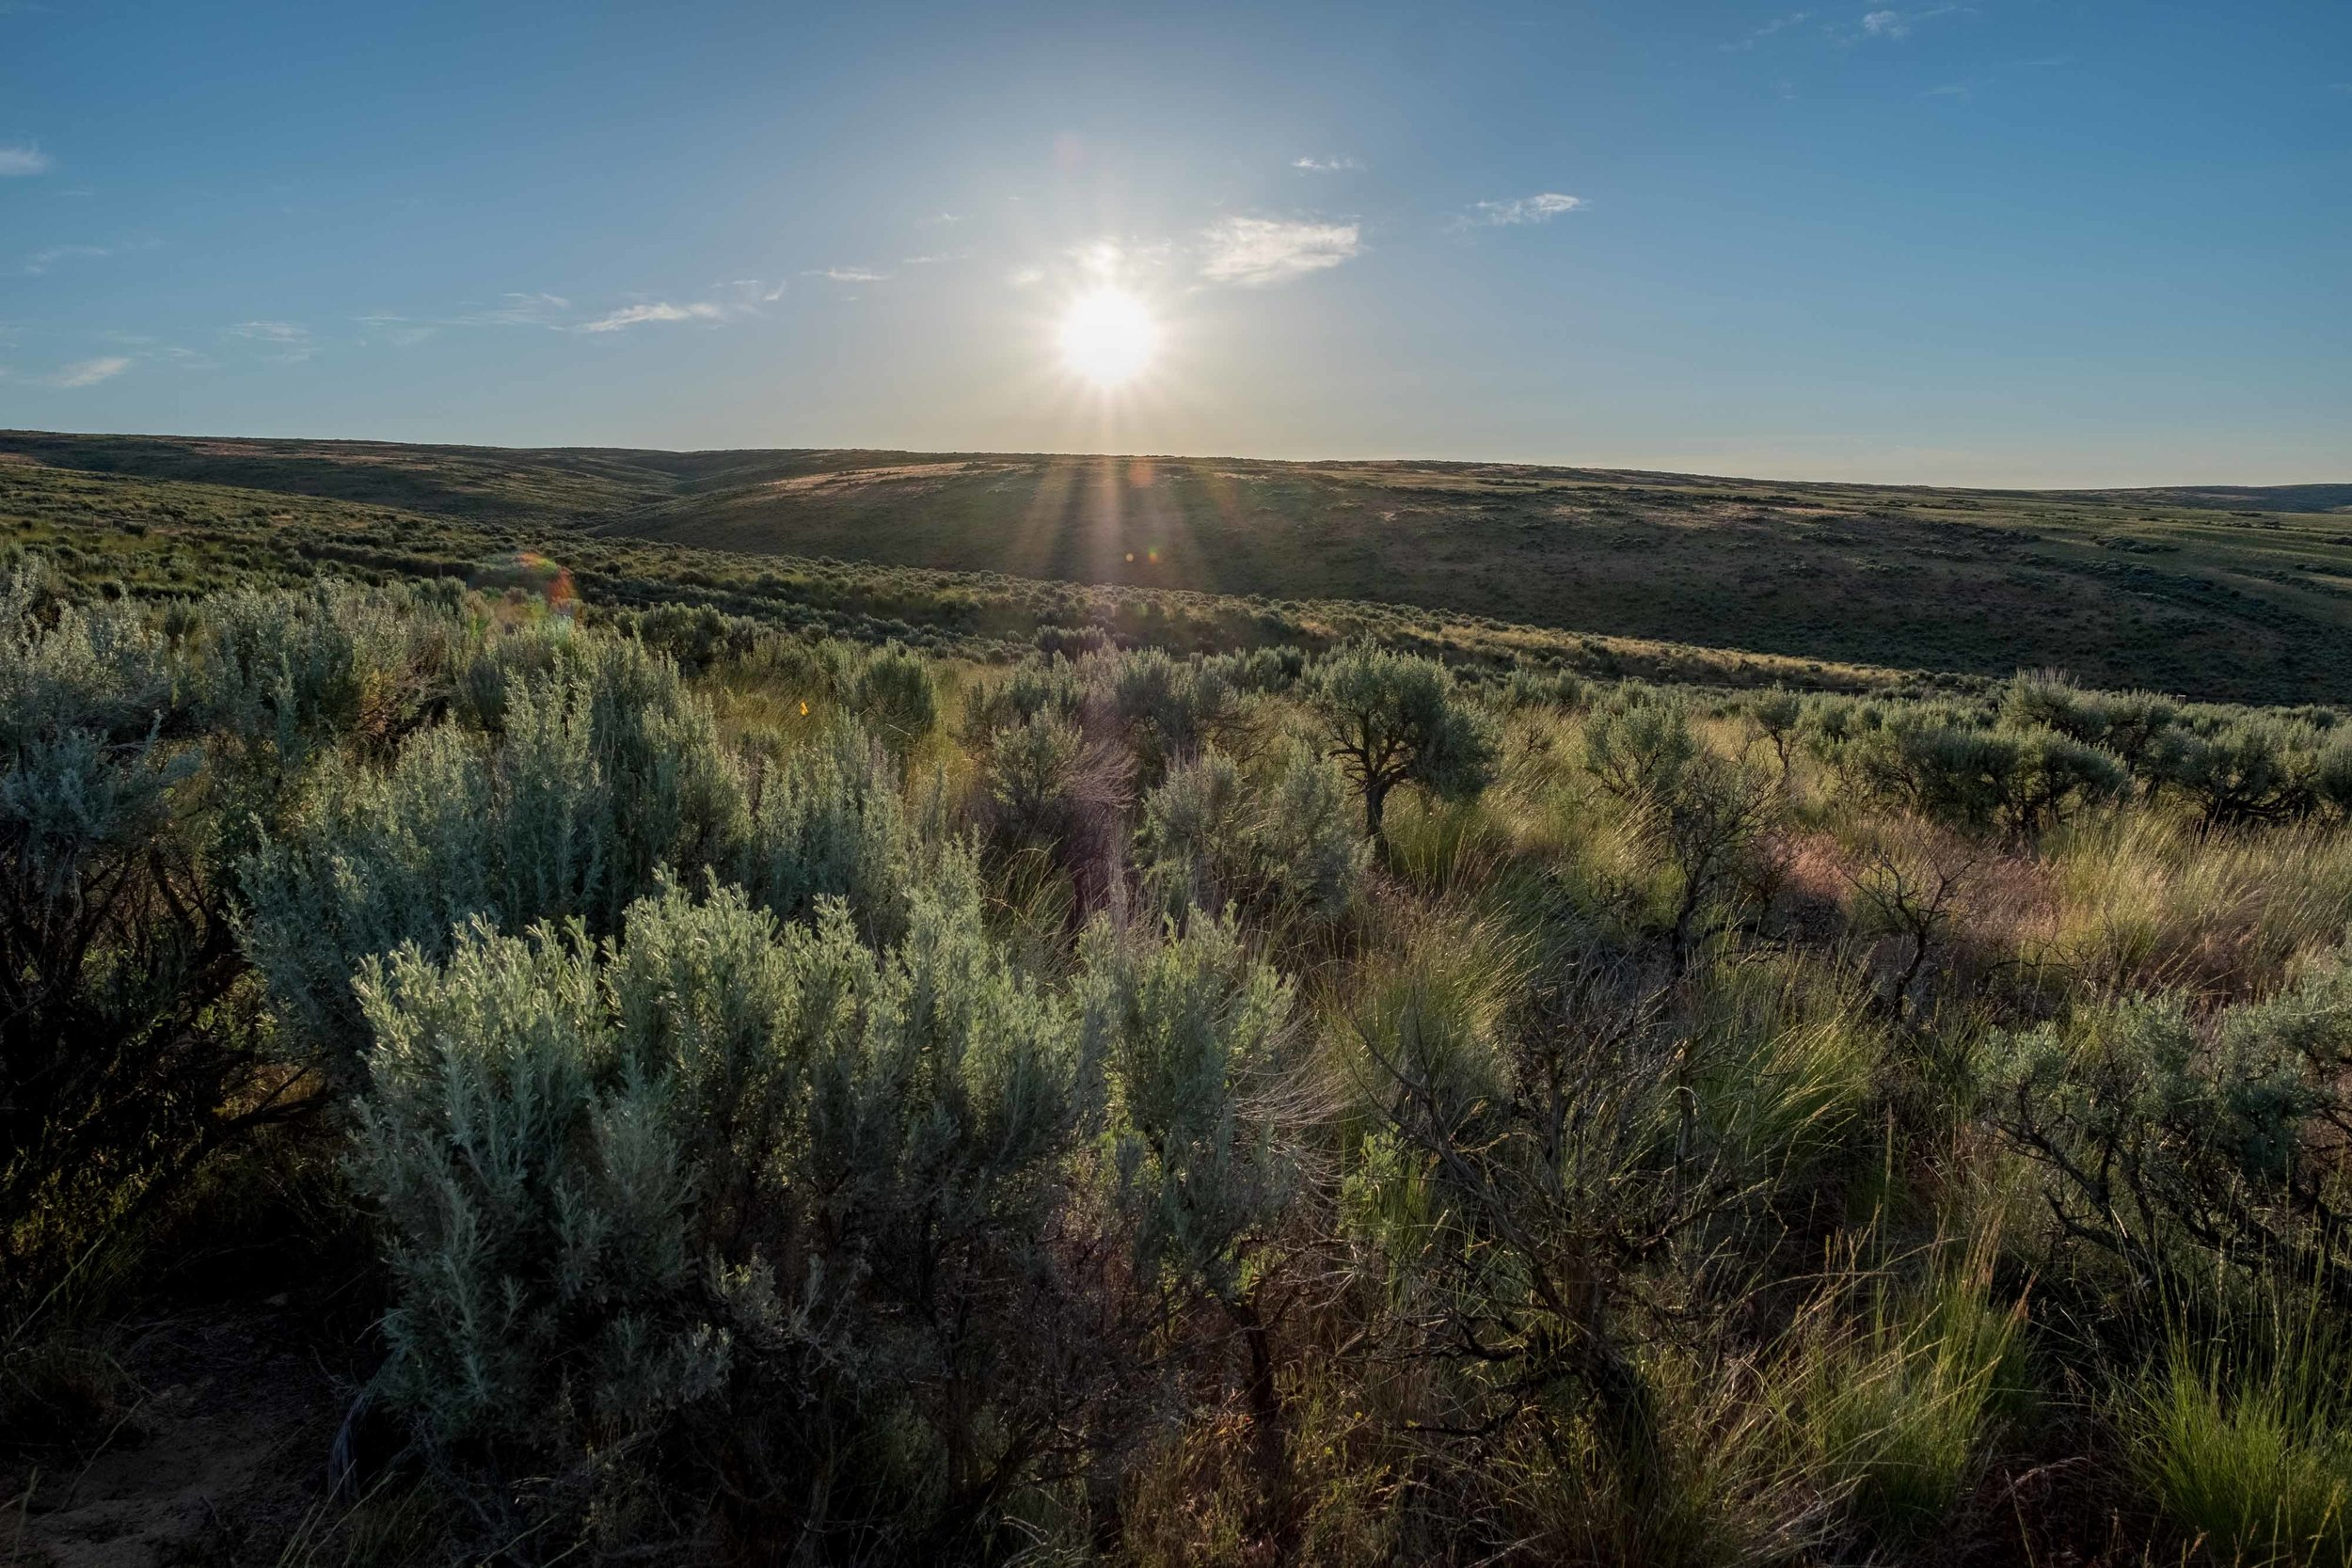 After expiring at the end of September last year, LWCF is one step closer to once again protecting open spaces and beautiful landscapes like Washington's shrub-steppe. Photo by Kit Swartz.